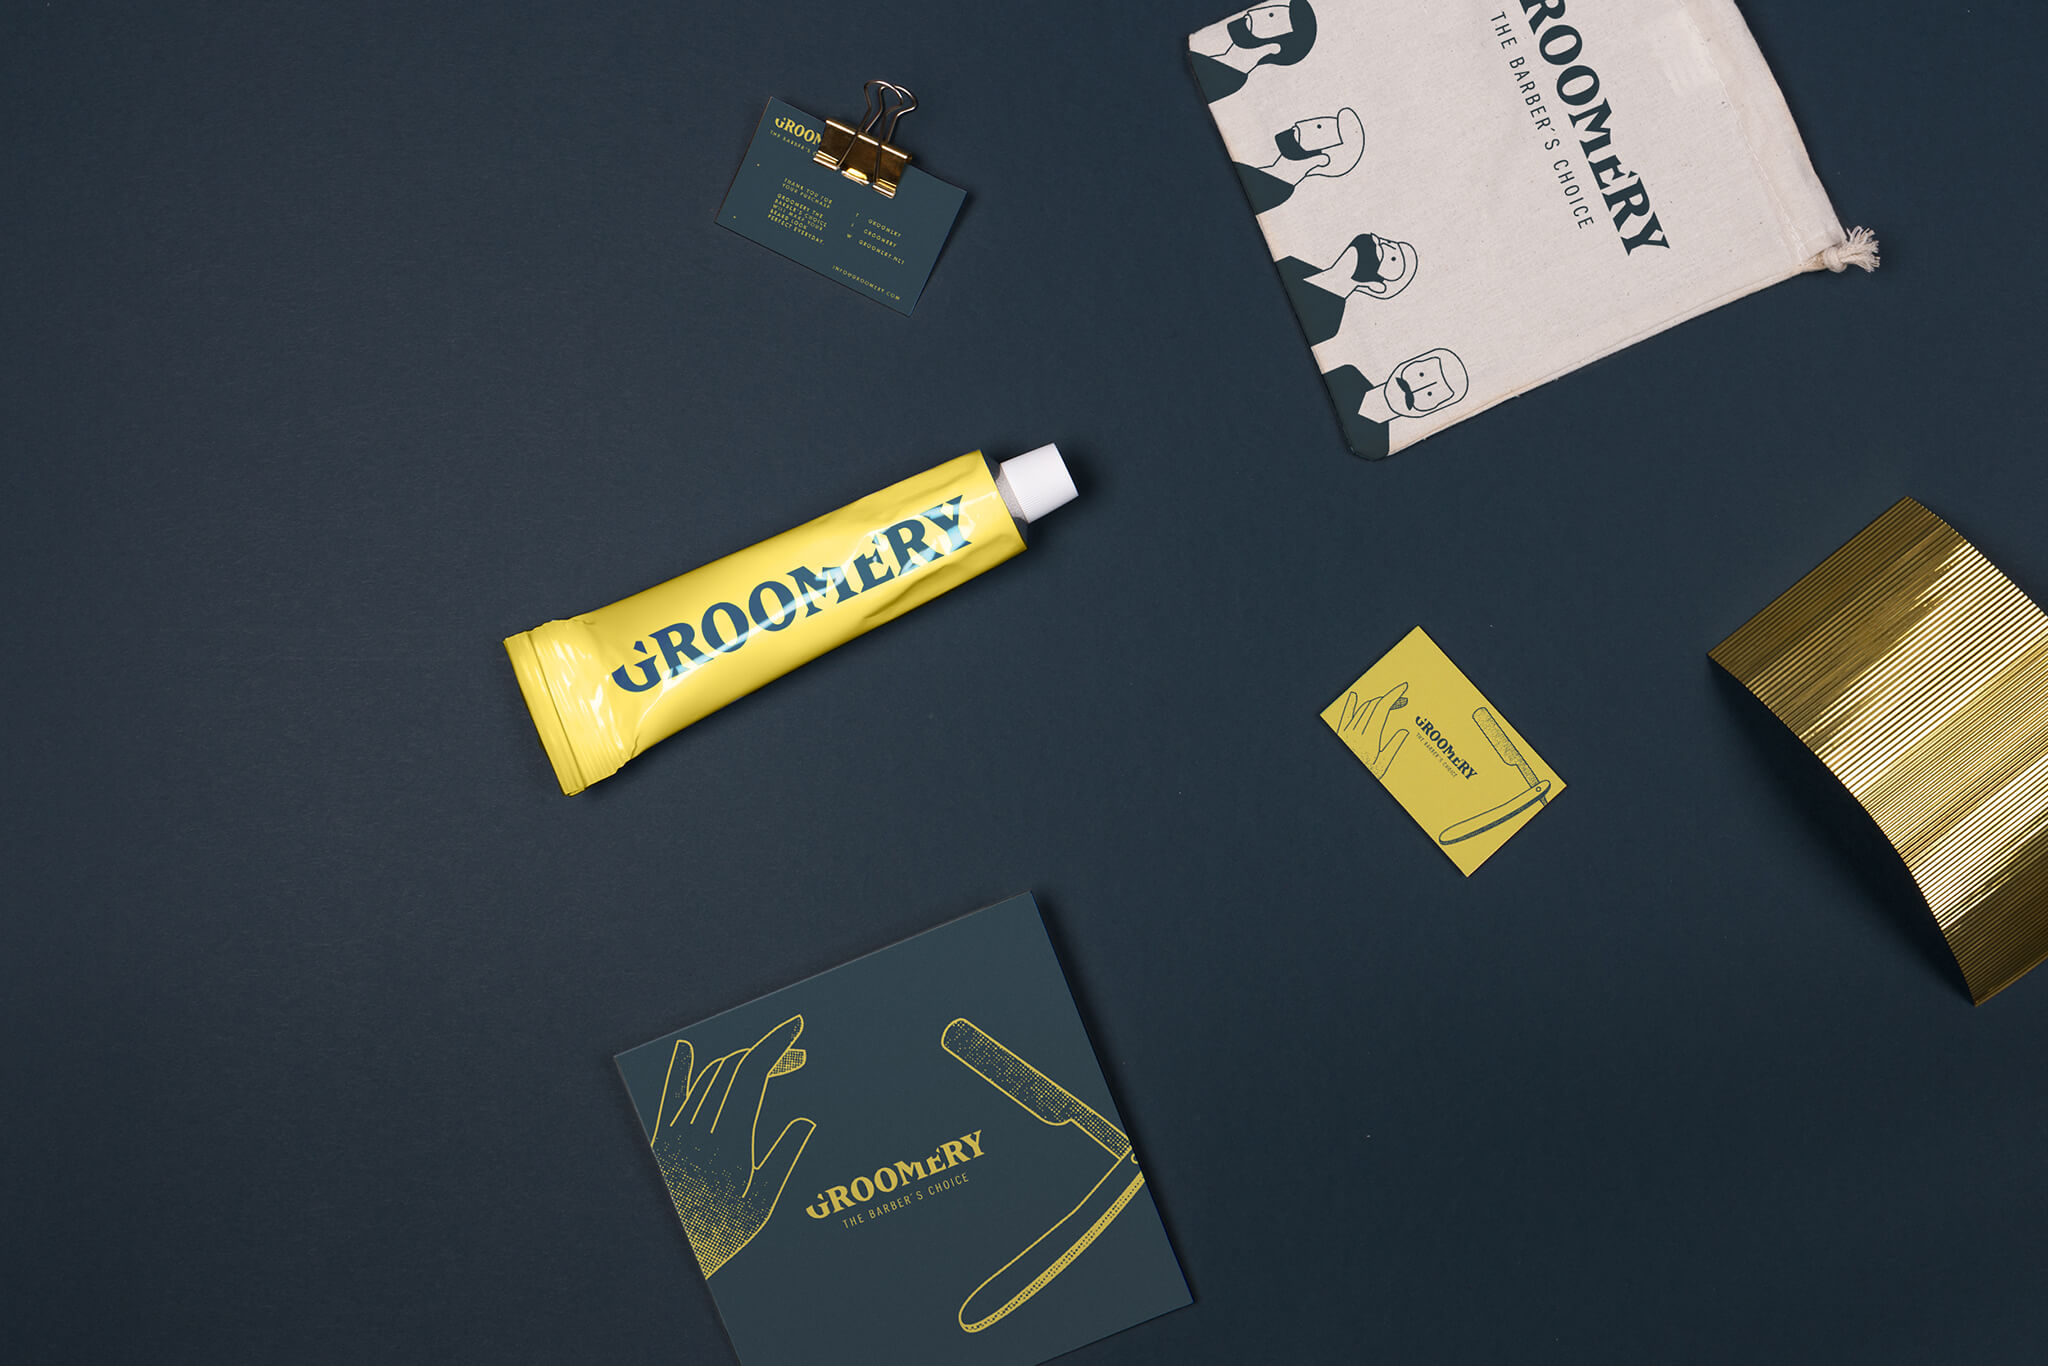 Packagingdesign Photography by Marc Oortman